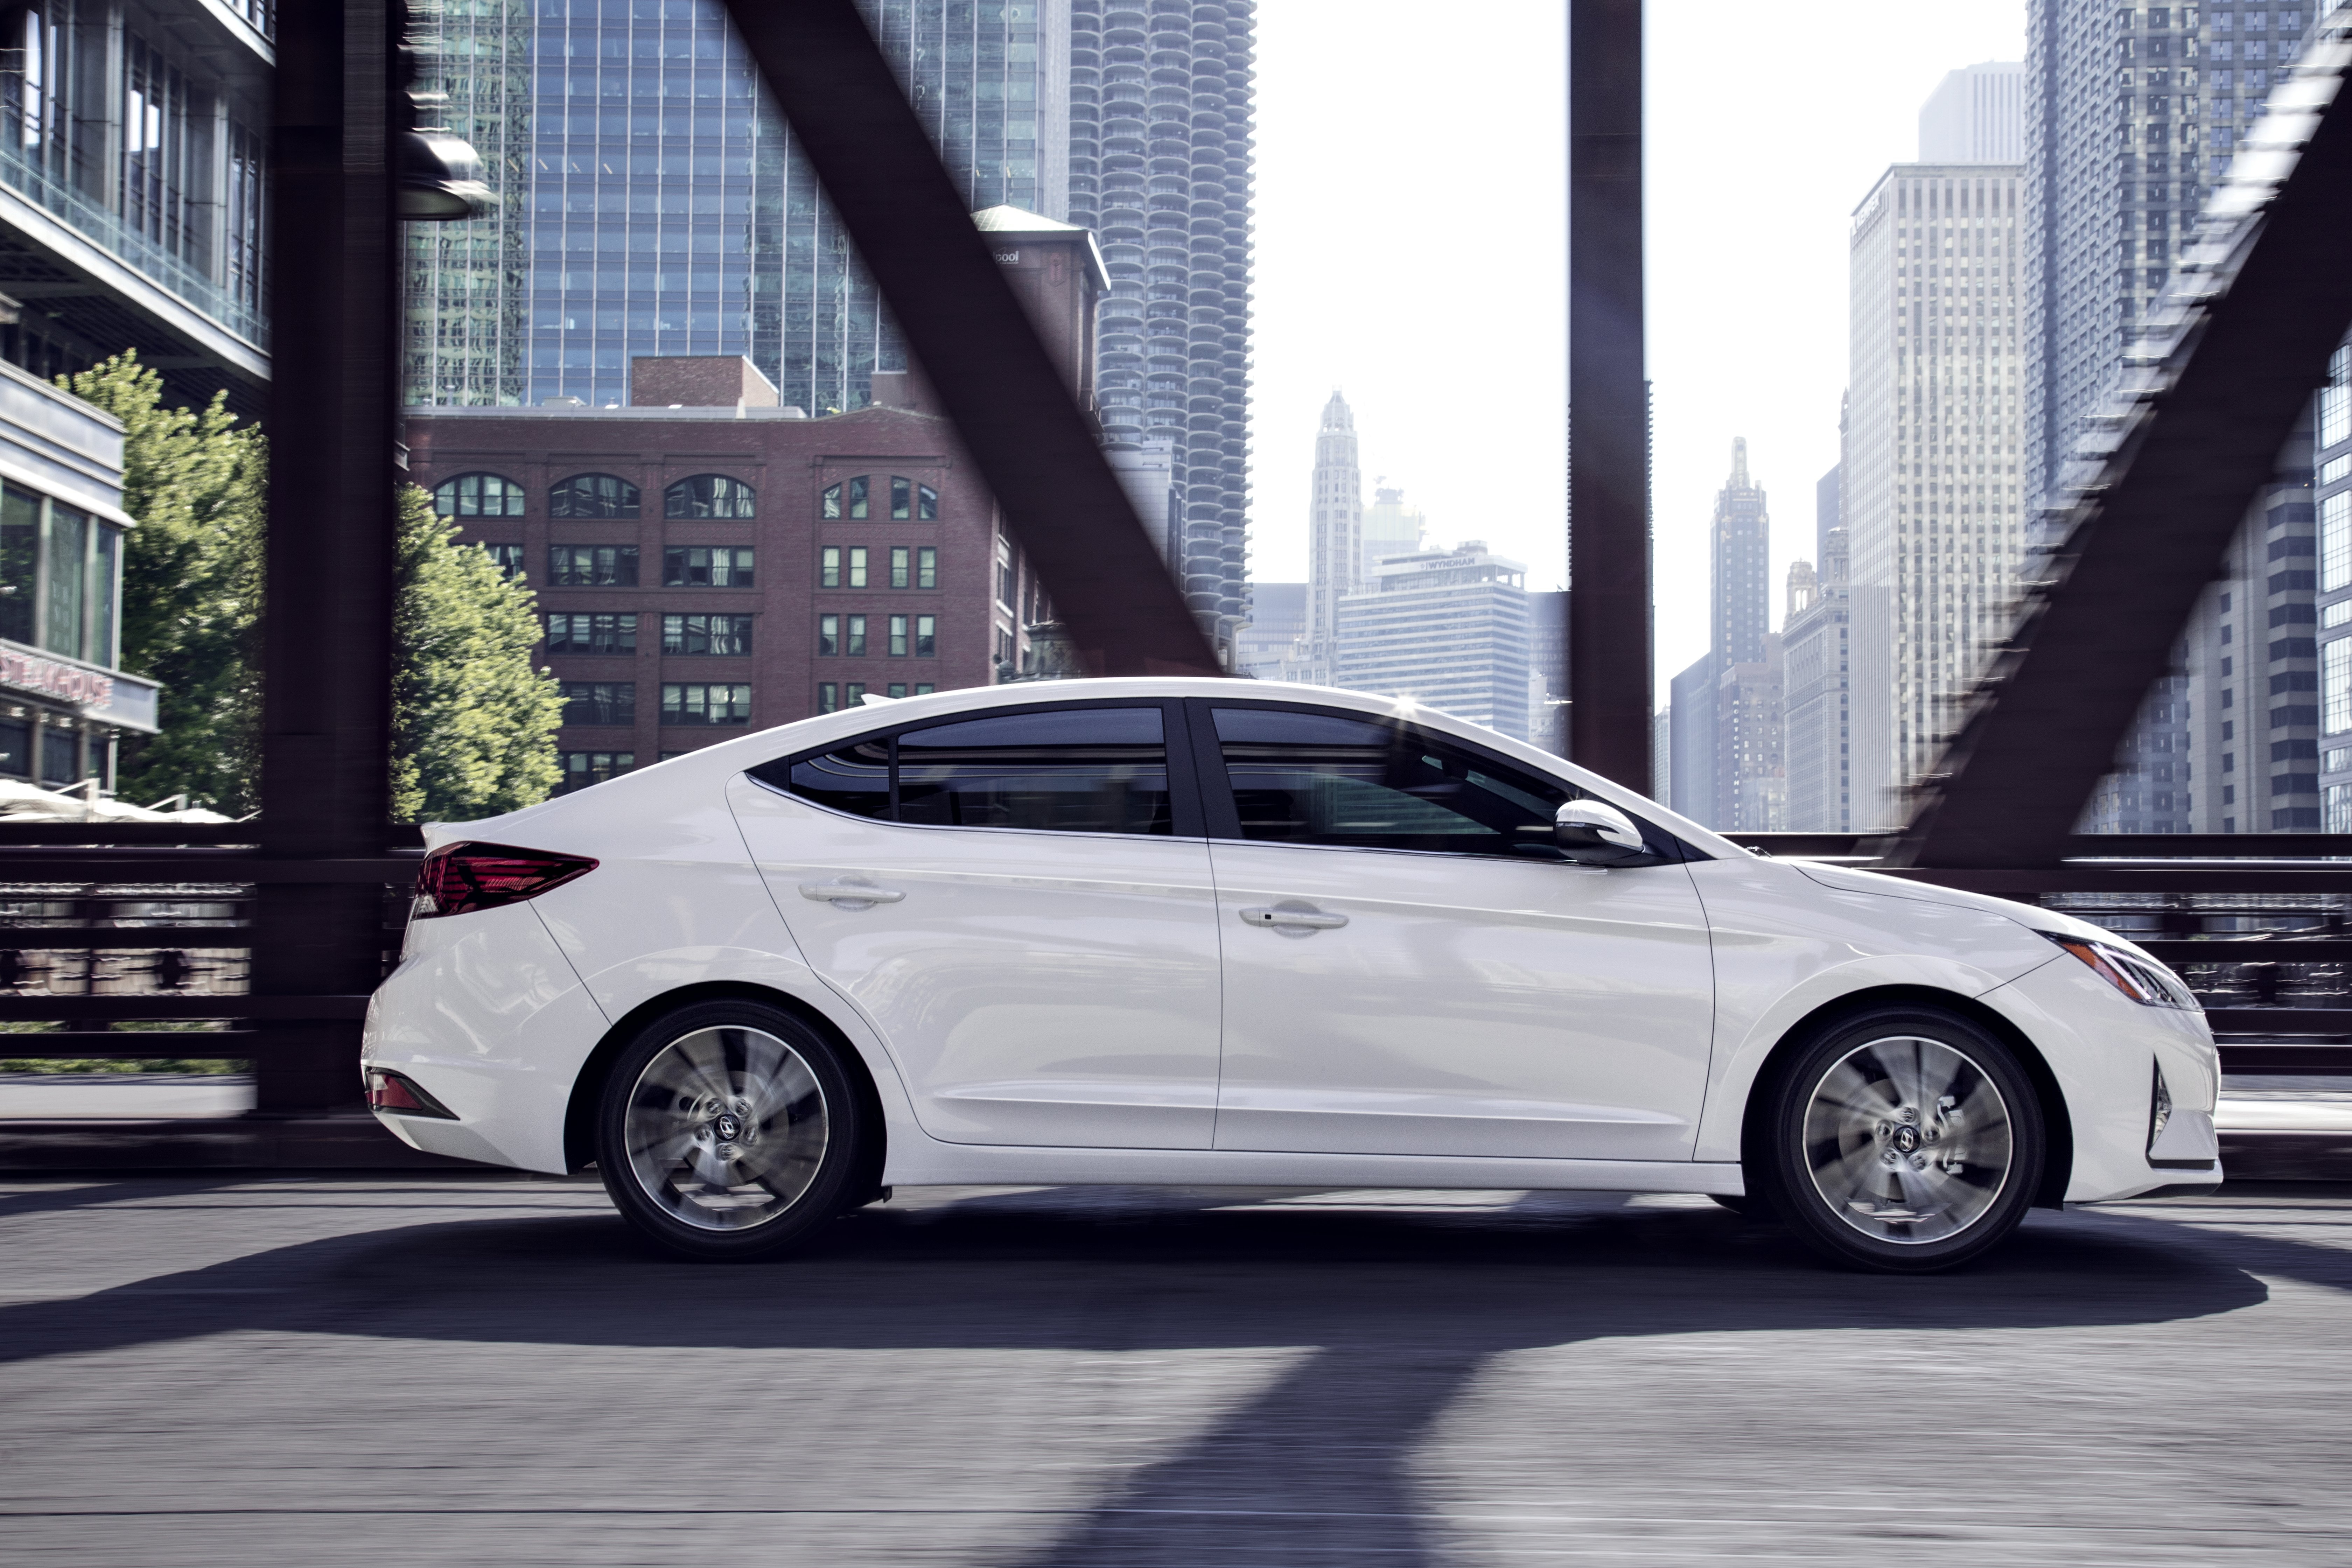 Hyundais available in Louisville, KY at